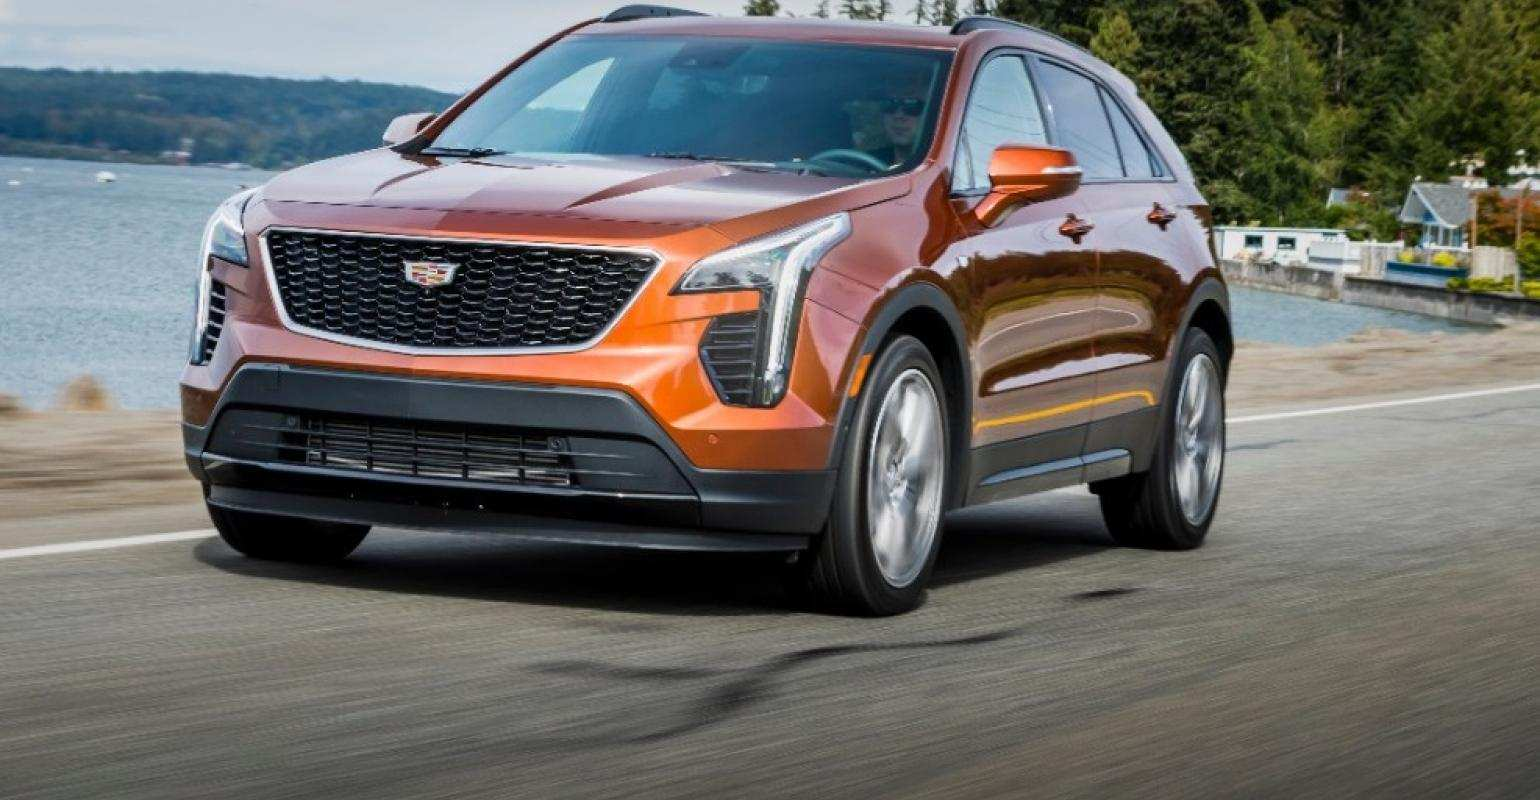 94 Concept of New Cadillac Xt4 2019 Images Engine New Review with New Cadillac Xt4 2019 Images Engine